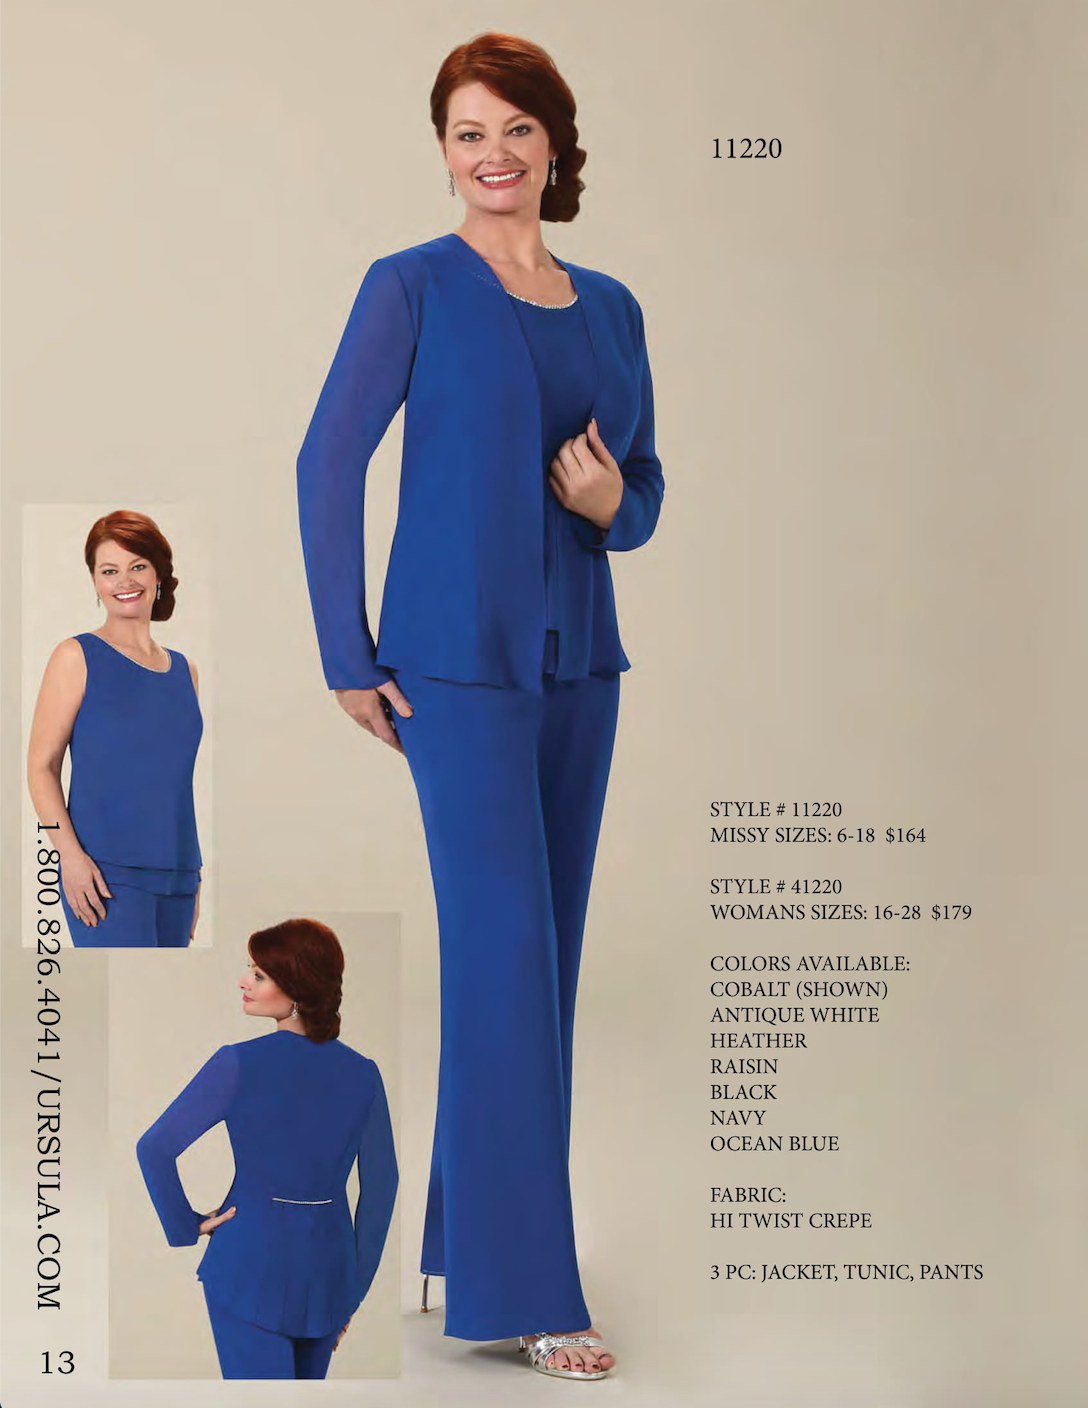 STYLE # 41220 URSULA  WOMANS SIZES